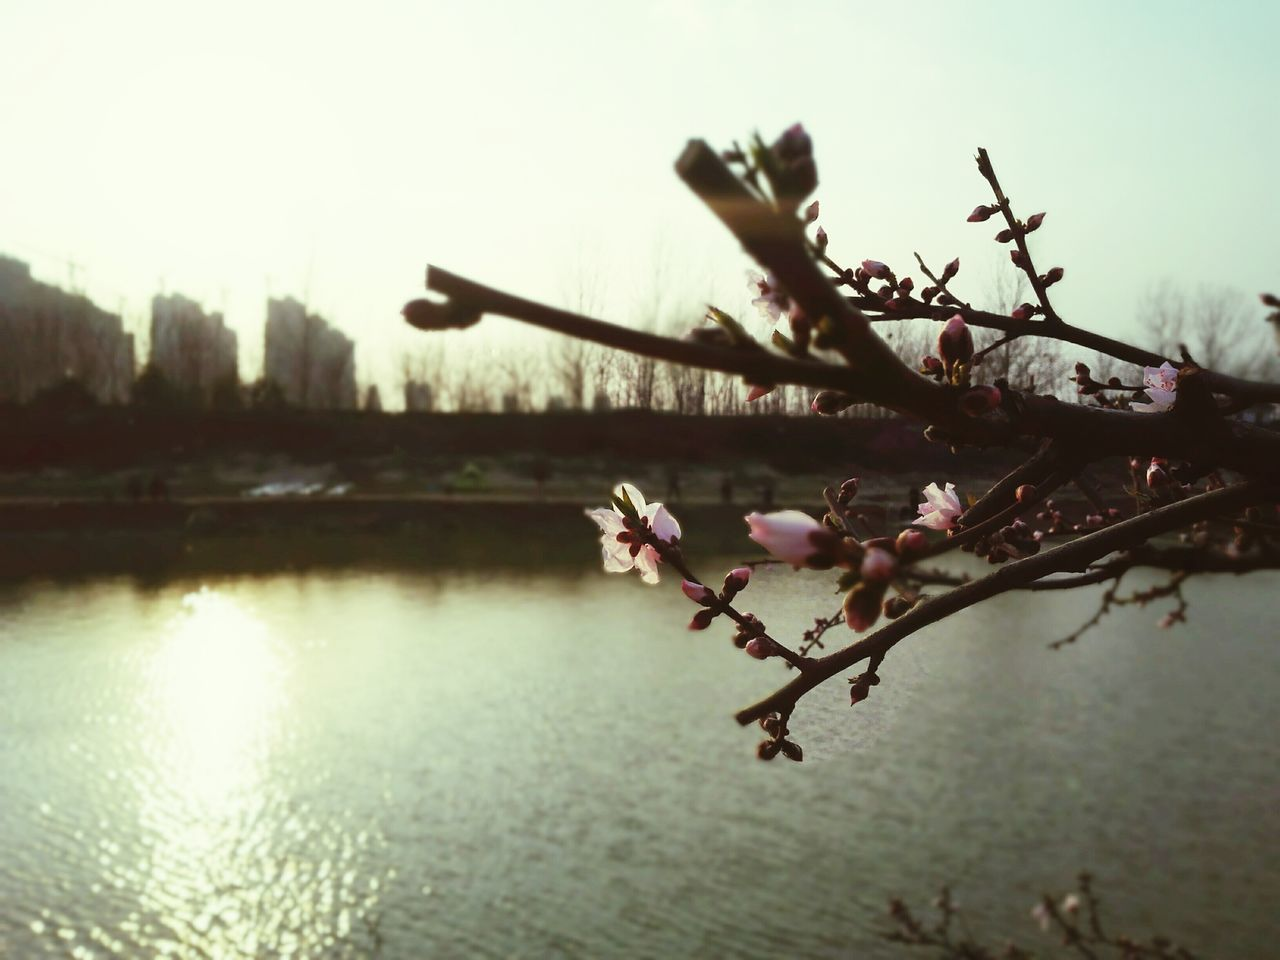 beauty in nature, nature, flower, growth, fragility, water, no people, tranquility, lake, outdoors, tree, blossom, freshness, plant, day, branch, sky, springtime, scenics, close-up, flower head